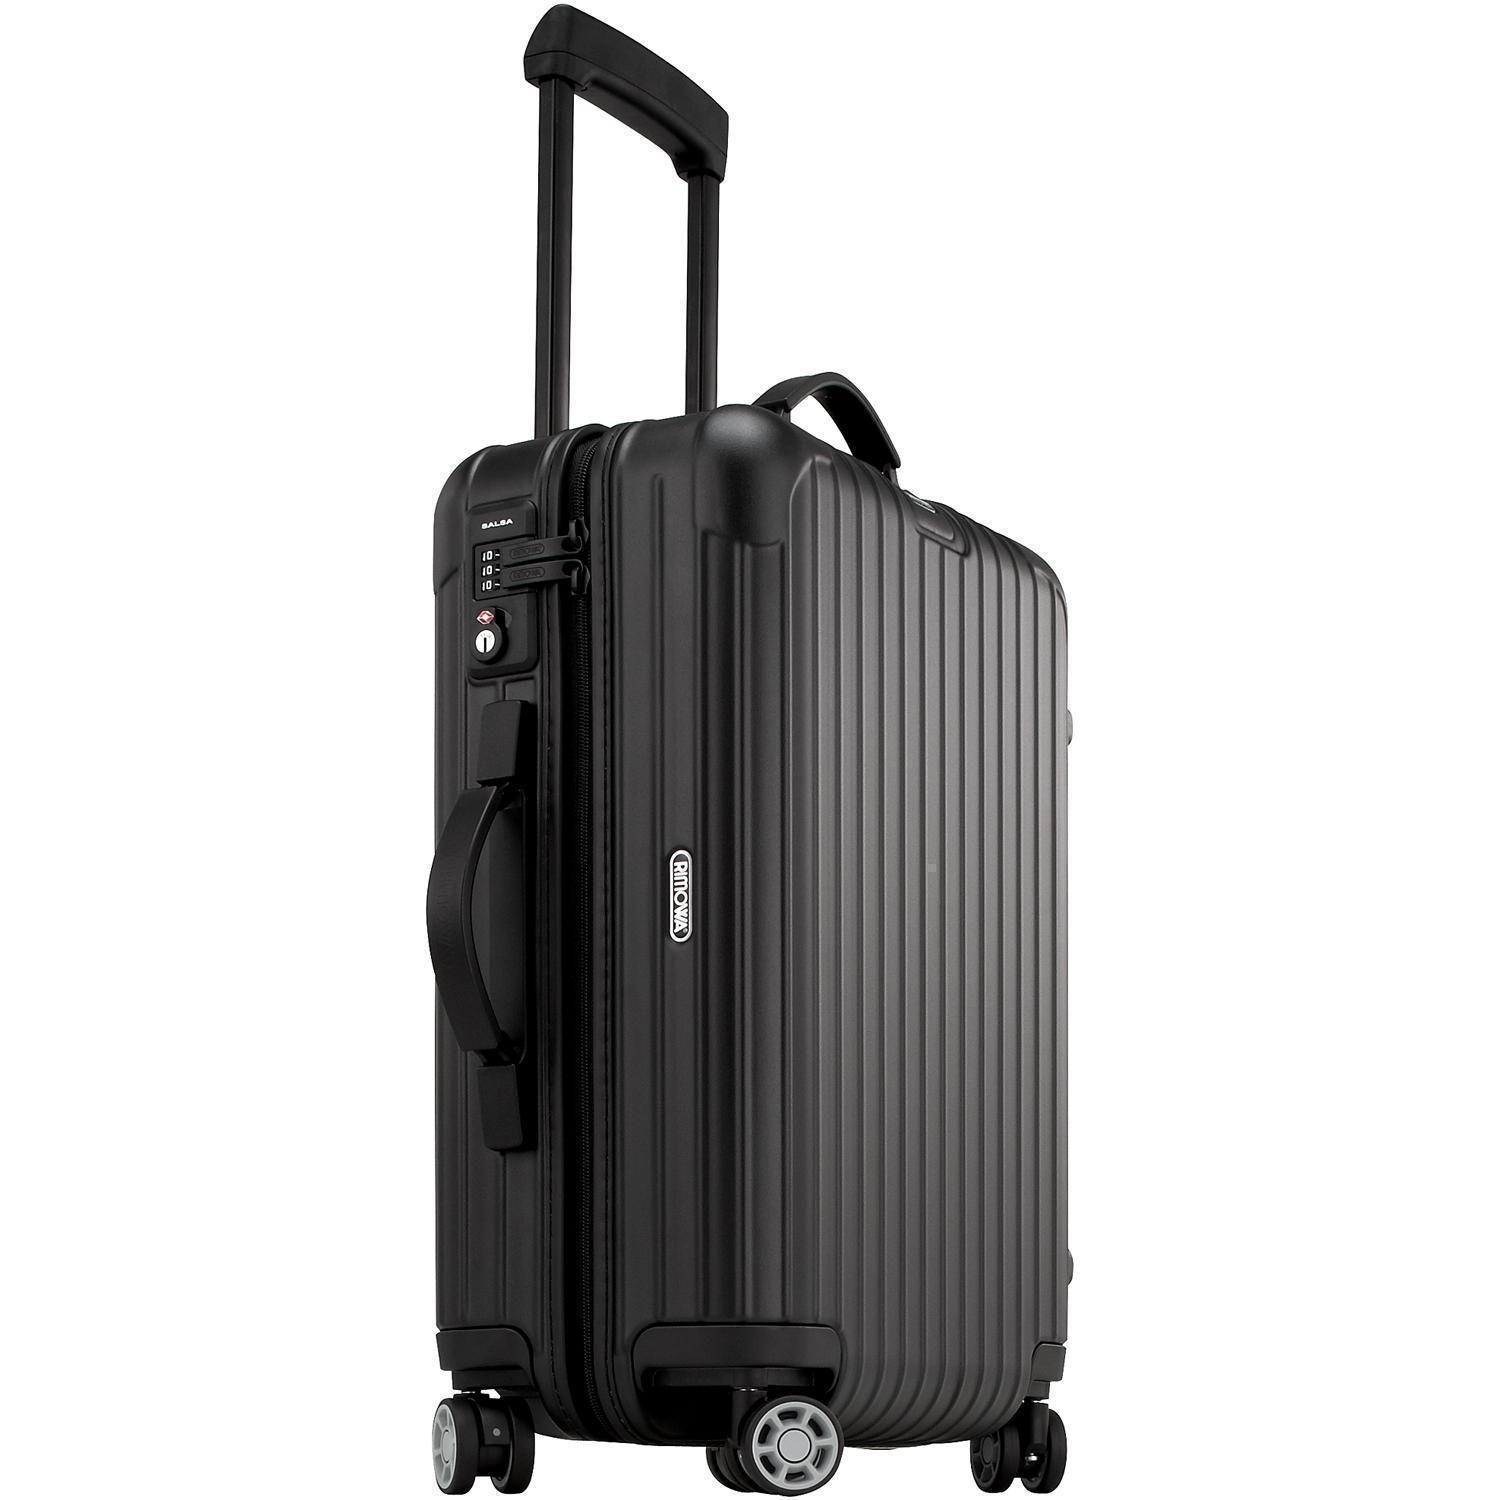 rimowa salsa cabin multiwheel 52 iata kaufen bei markenkoffer. Black Bedroom Furniture Sets. Home Design Ideas